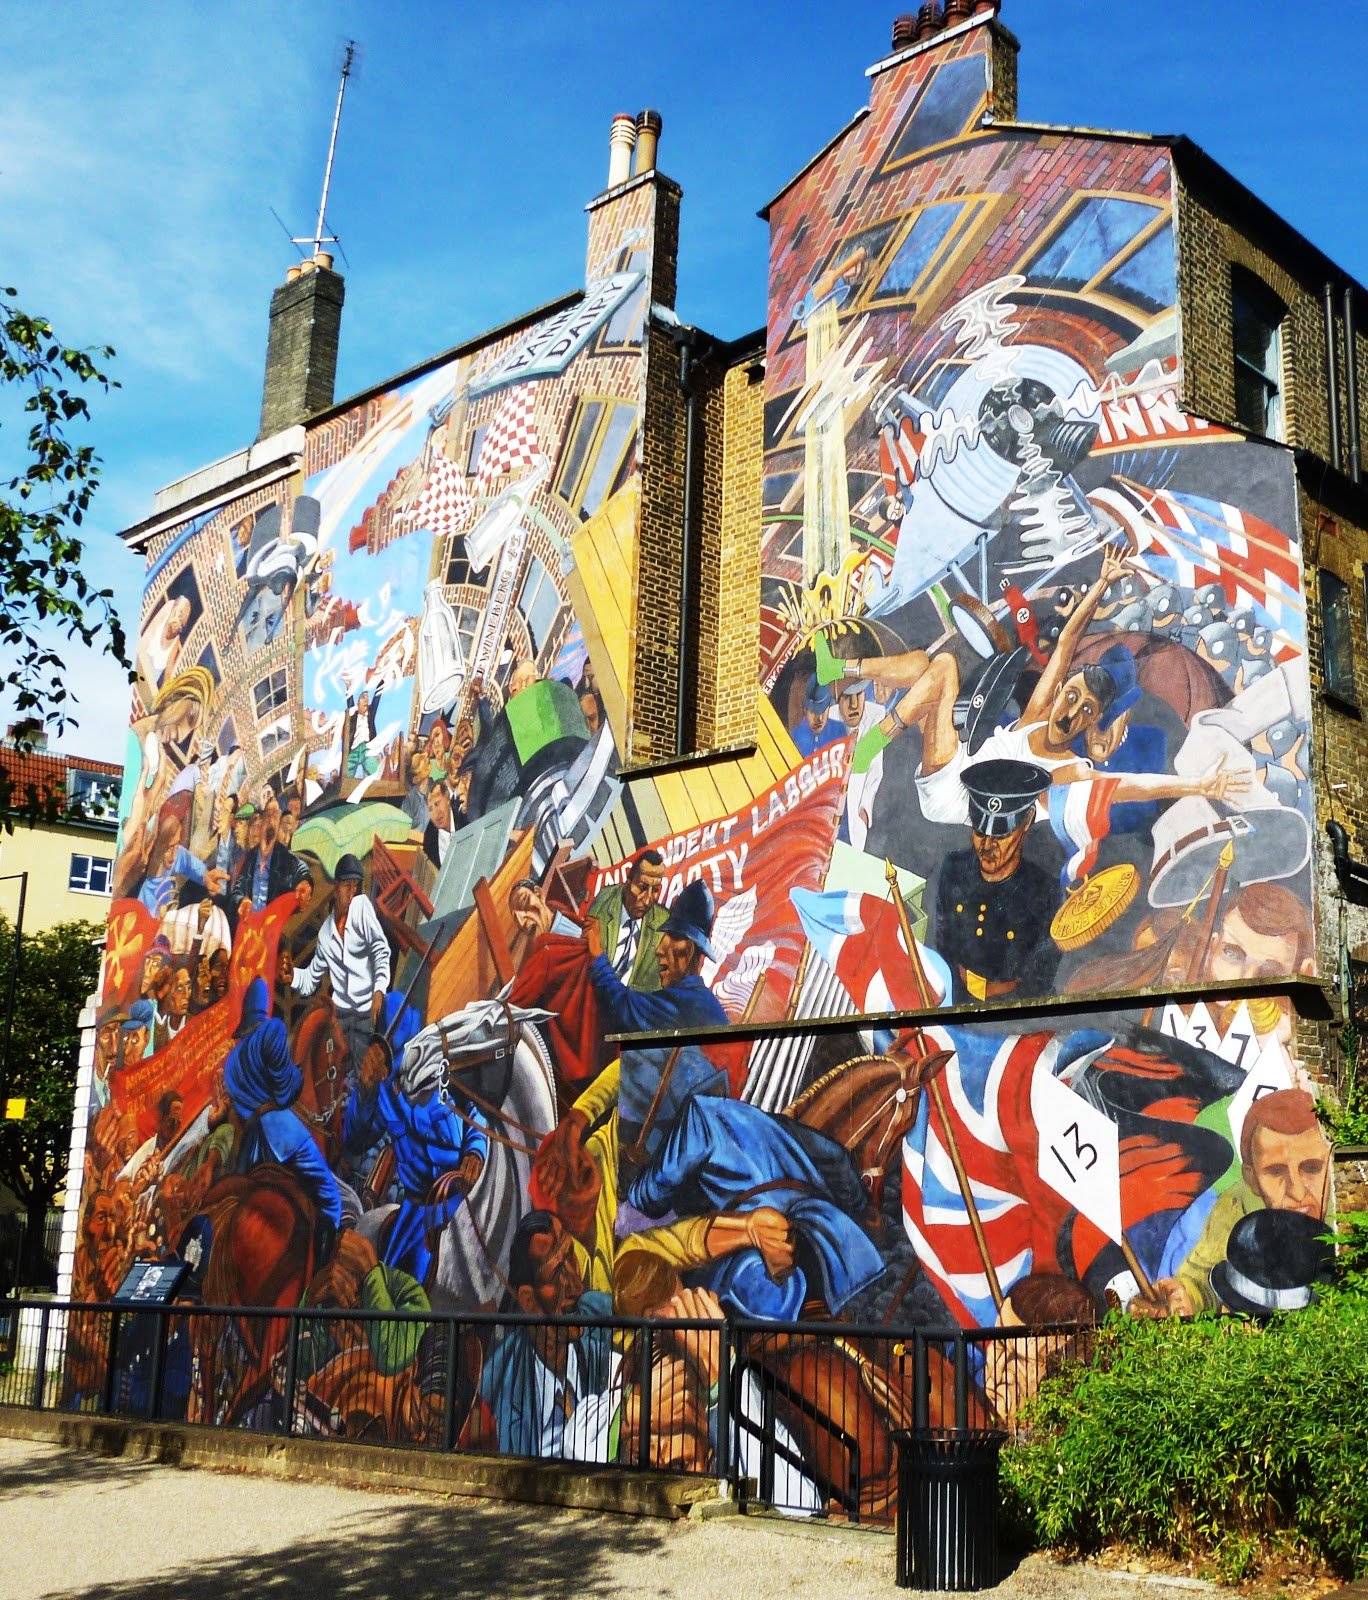 Dr tony shaw the battle of cable street mural east end for Battle of cable street mural